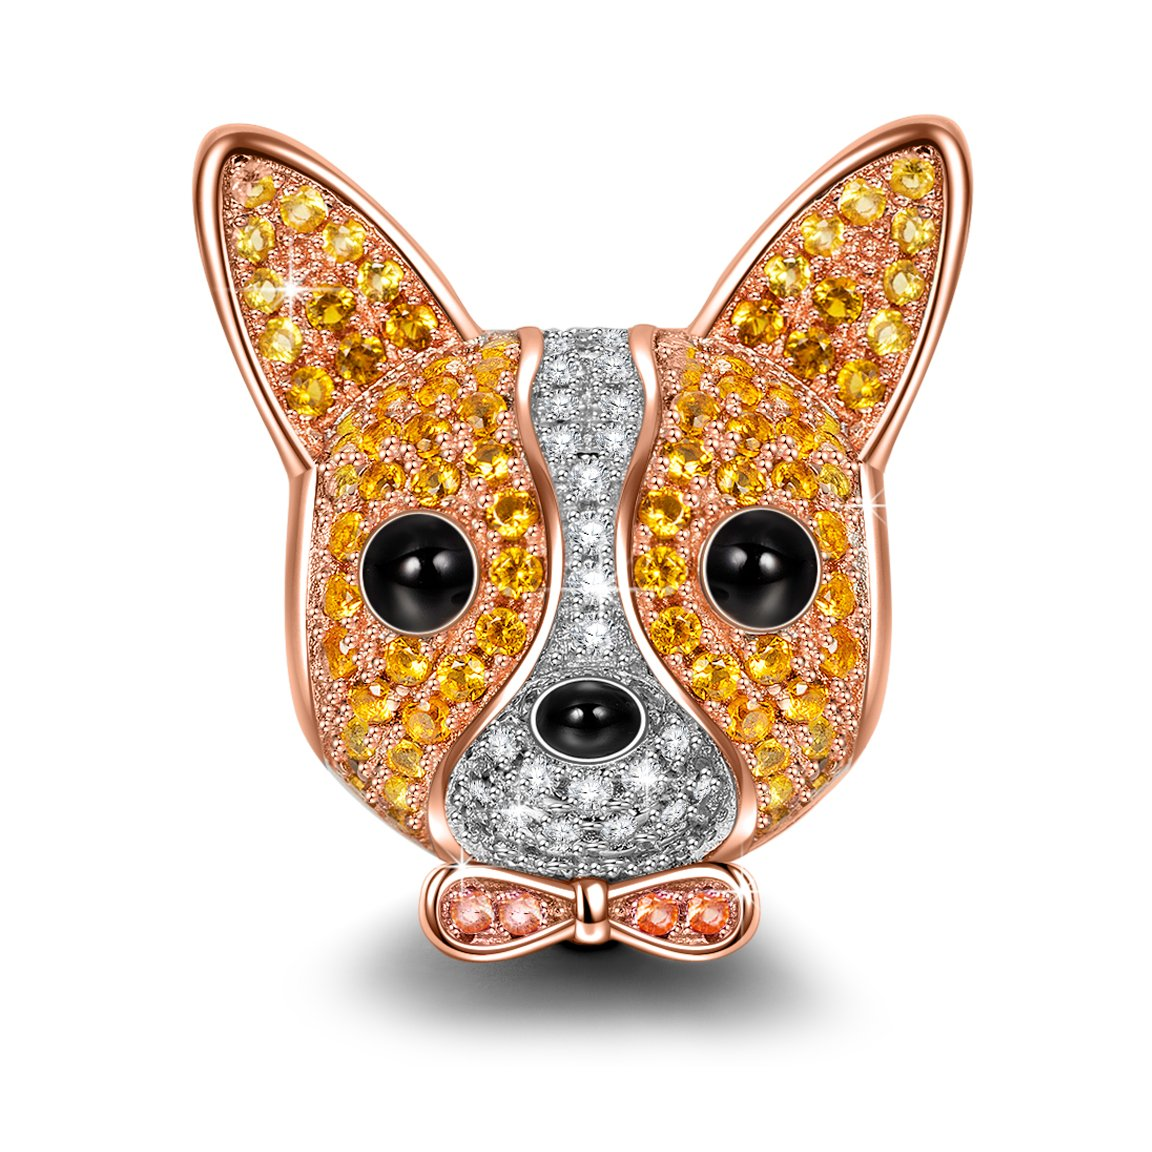 NINAQUEEN Chihuahua 925 Sterling Silver Puppy Dog Animal Bead Charm with Cubic Zirconia for Pandöra Charms Bracelet Jewelry Accessory Birthday for Teen Girls Kids Her Women Wife Mom